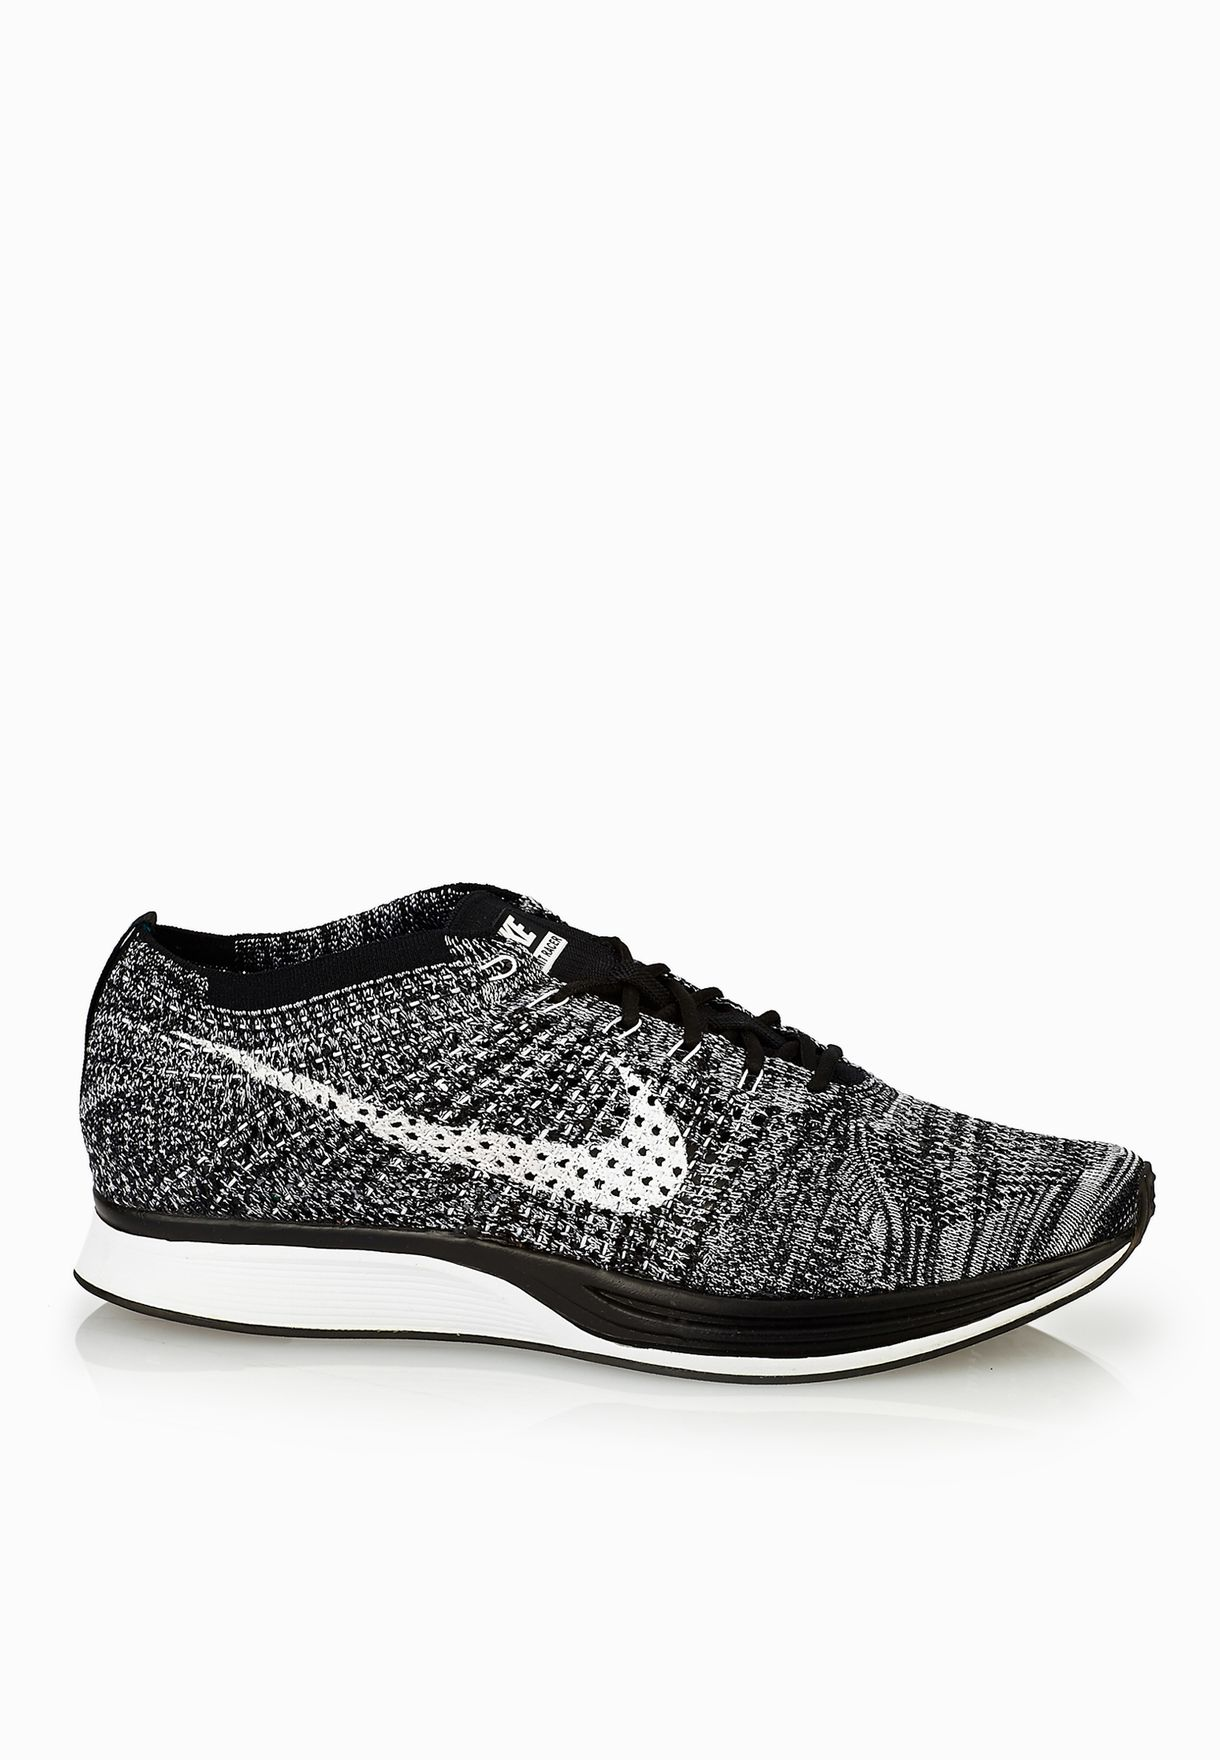 49649060ee68 Shop Nike monochrome Flyknit Racer 526628-012 for Men in UAE ...